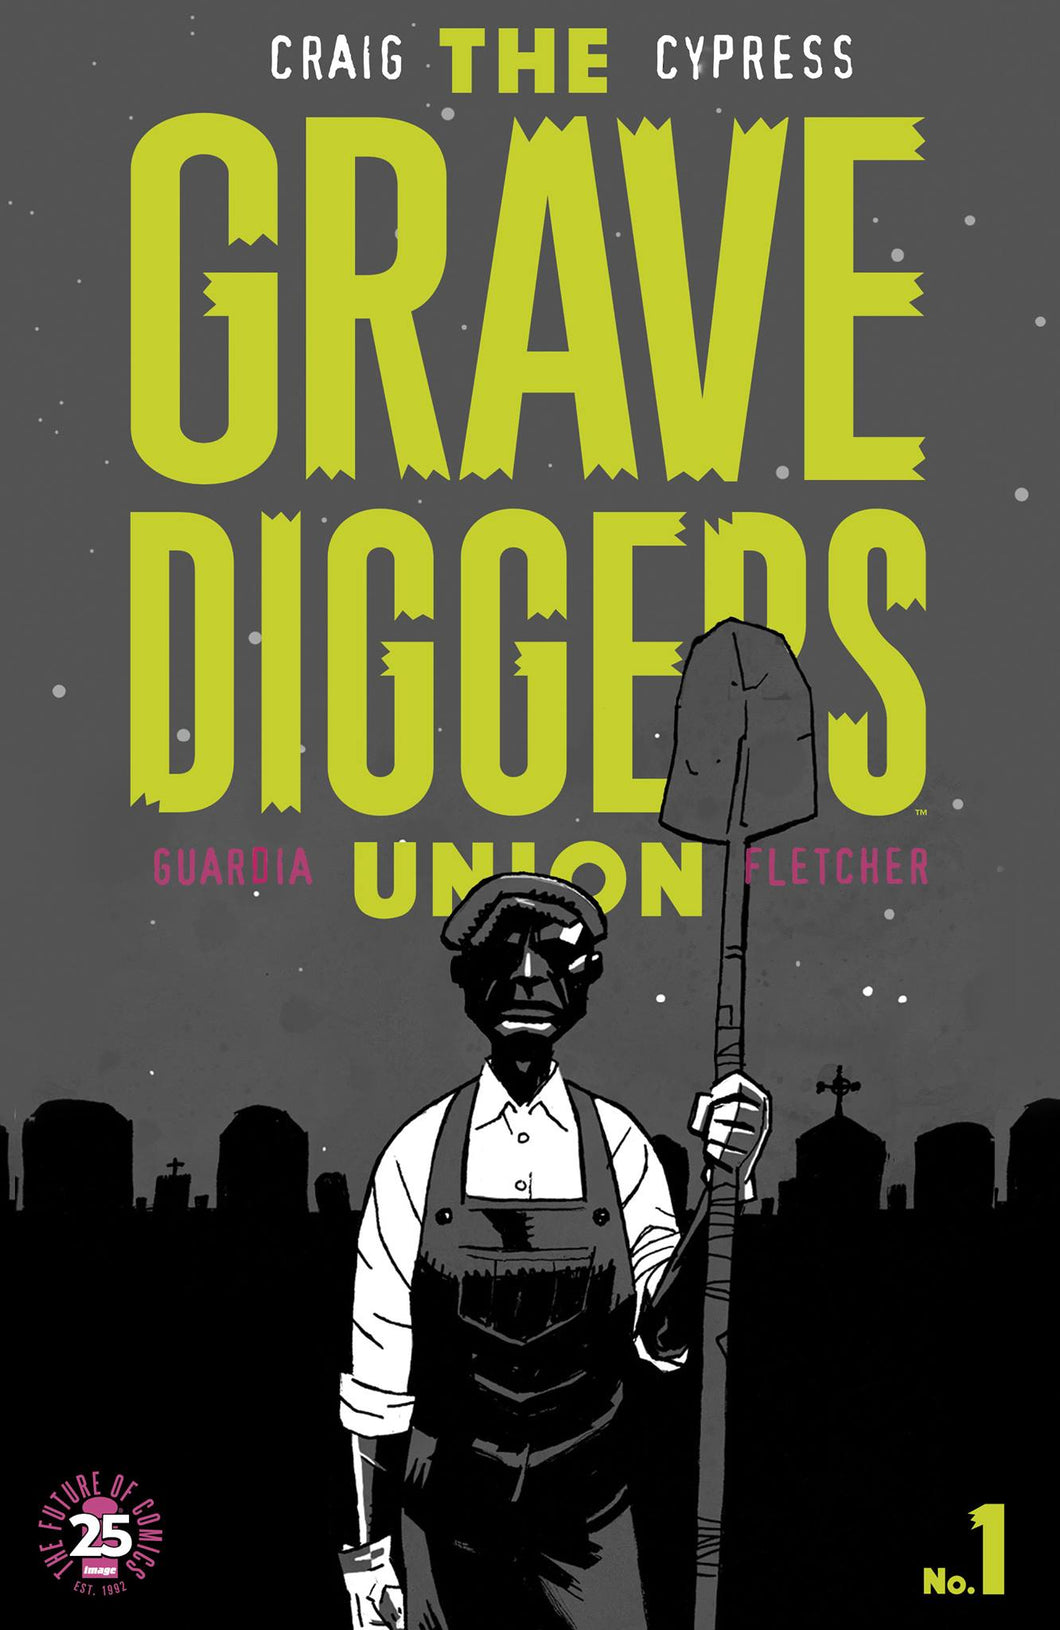 The Gravedigger's Union #1 - Image Exclusive Variant